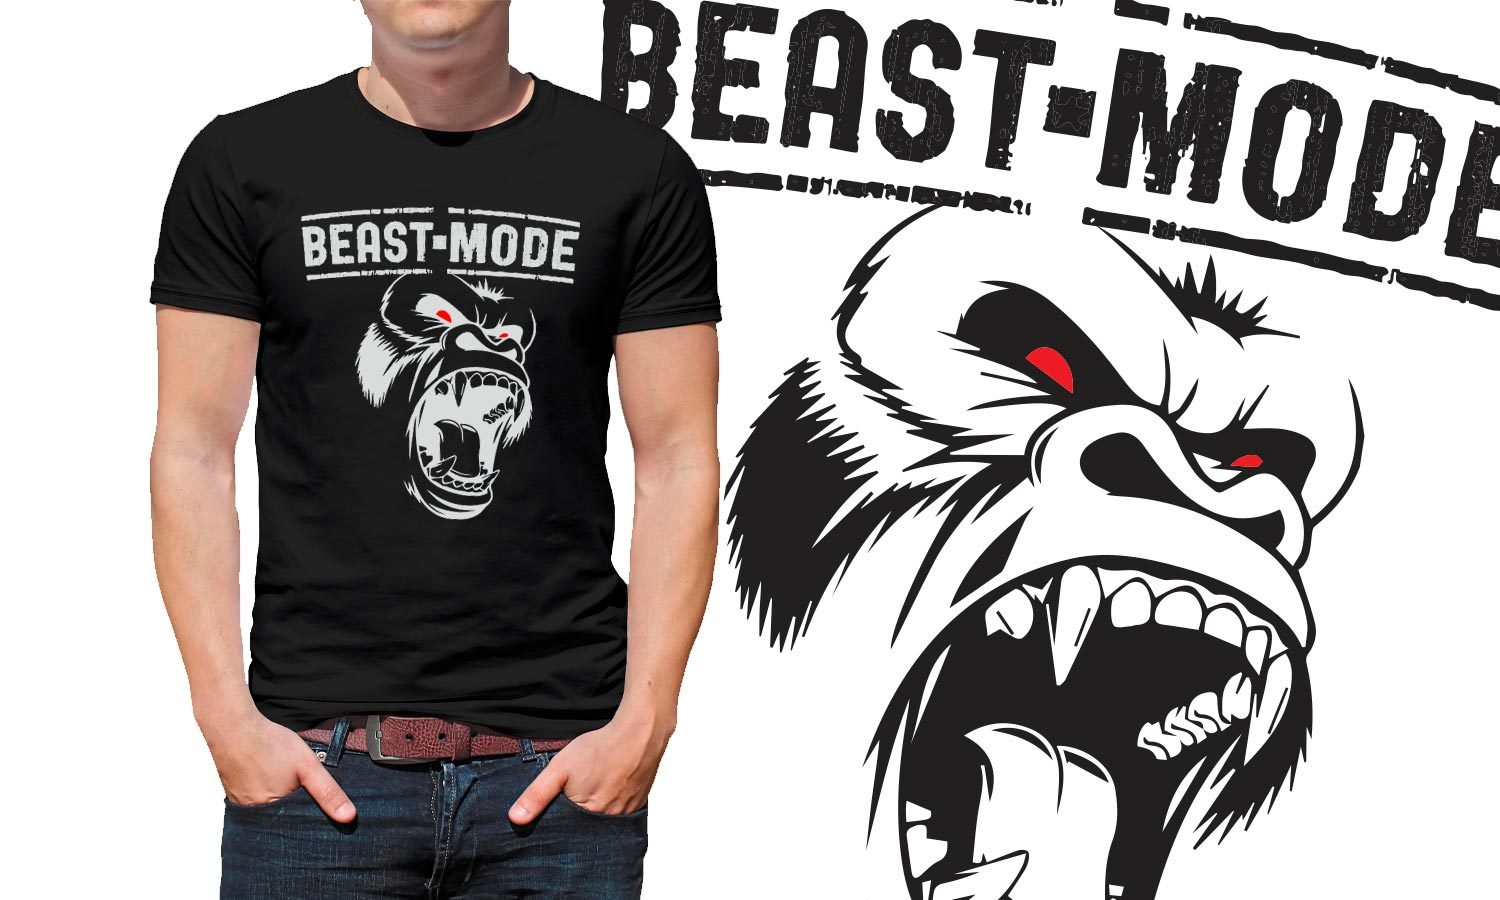 Beast Mode Gym - Printed T-Shirt for Men, Women and Kids - TS004